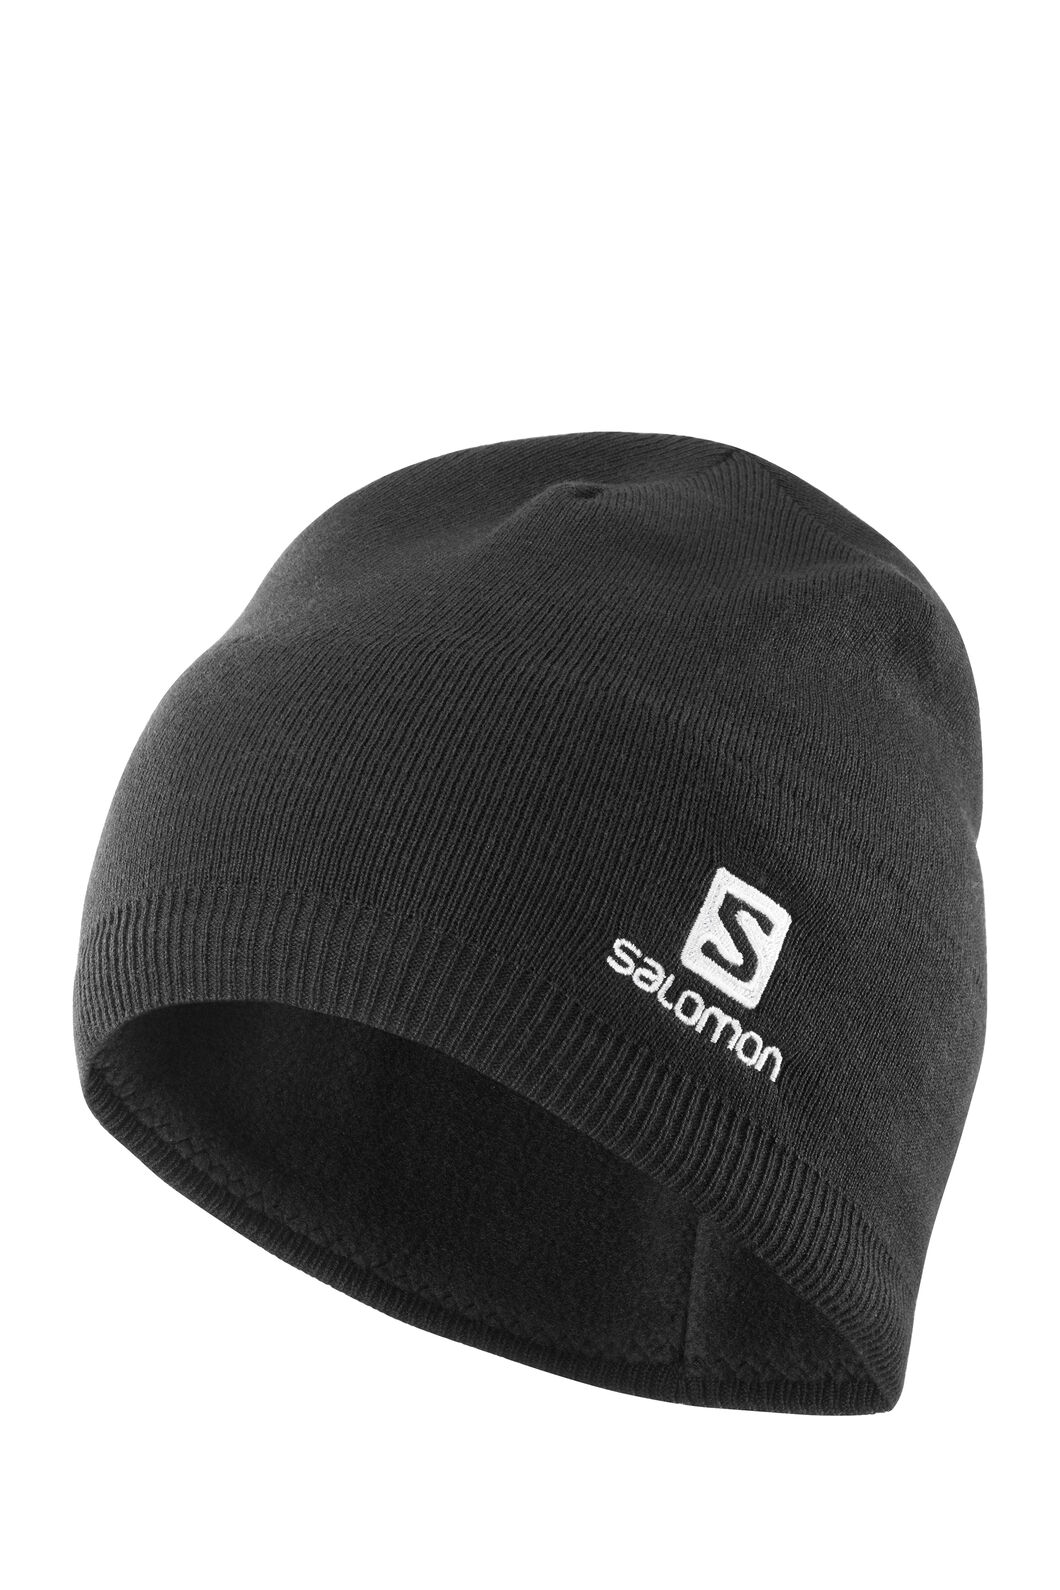 Salomon Beanie, Black, hi-res